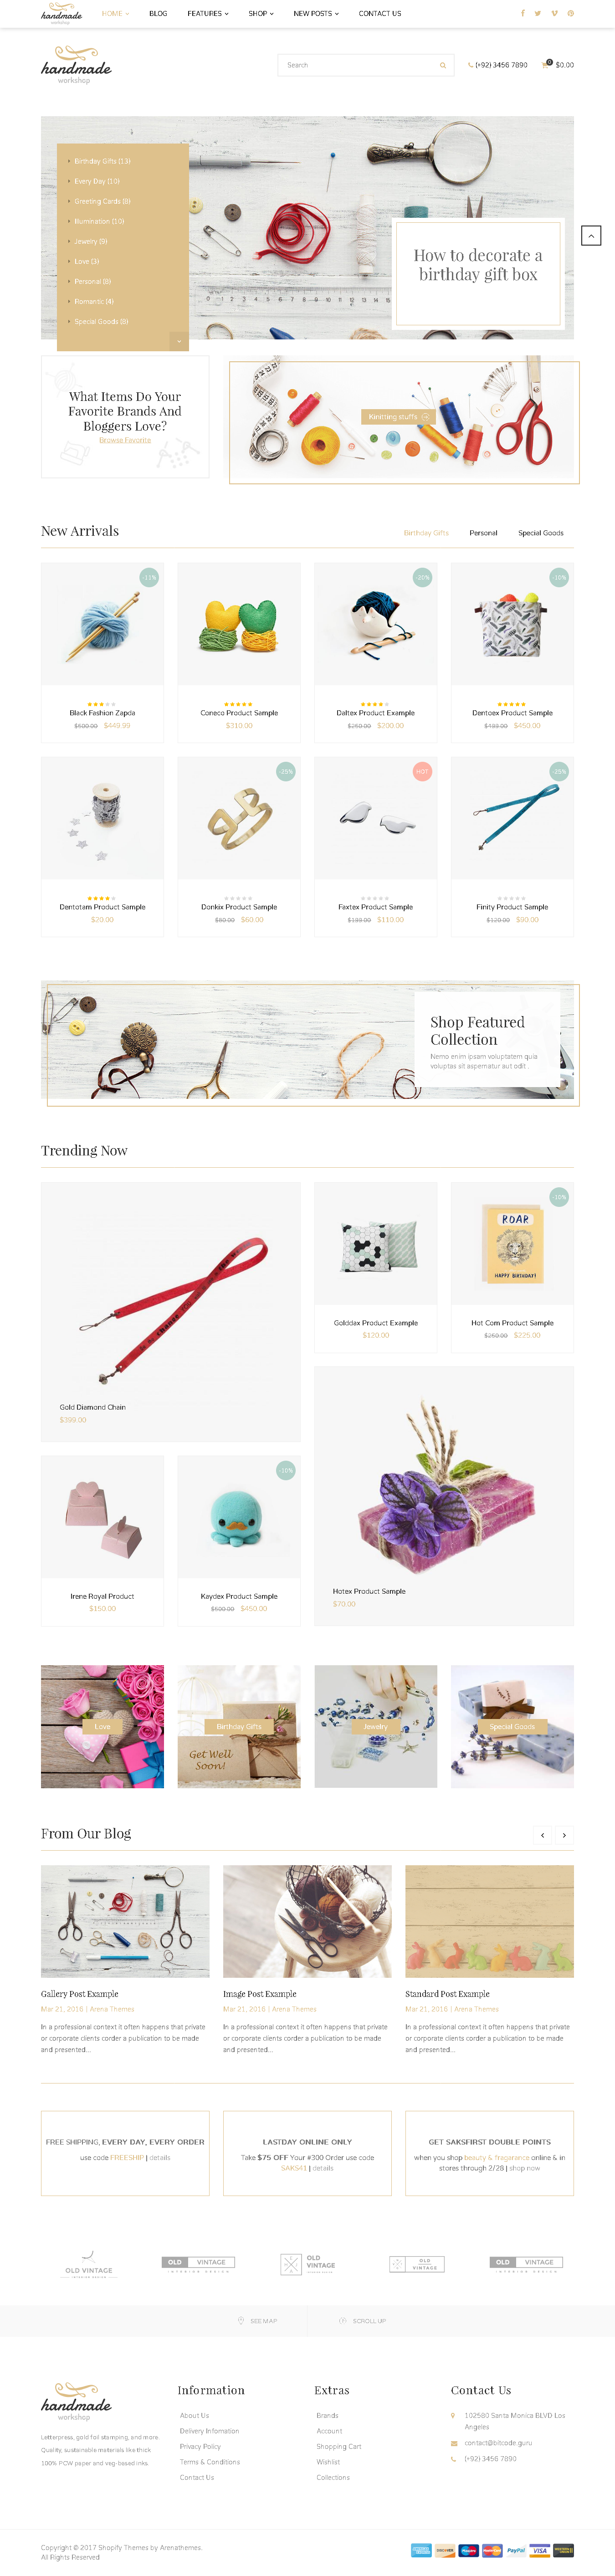 Top Shopify Theme for Art Work - Handmade Responsive Shopify Theme - Craft, Jewelry, ArtWork, Vintage and Creative Goods store theme